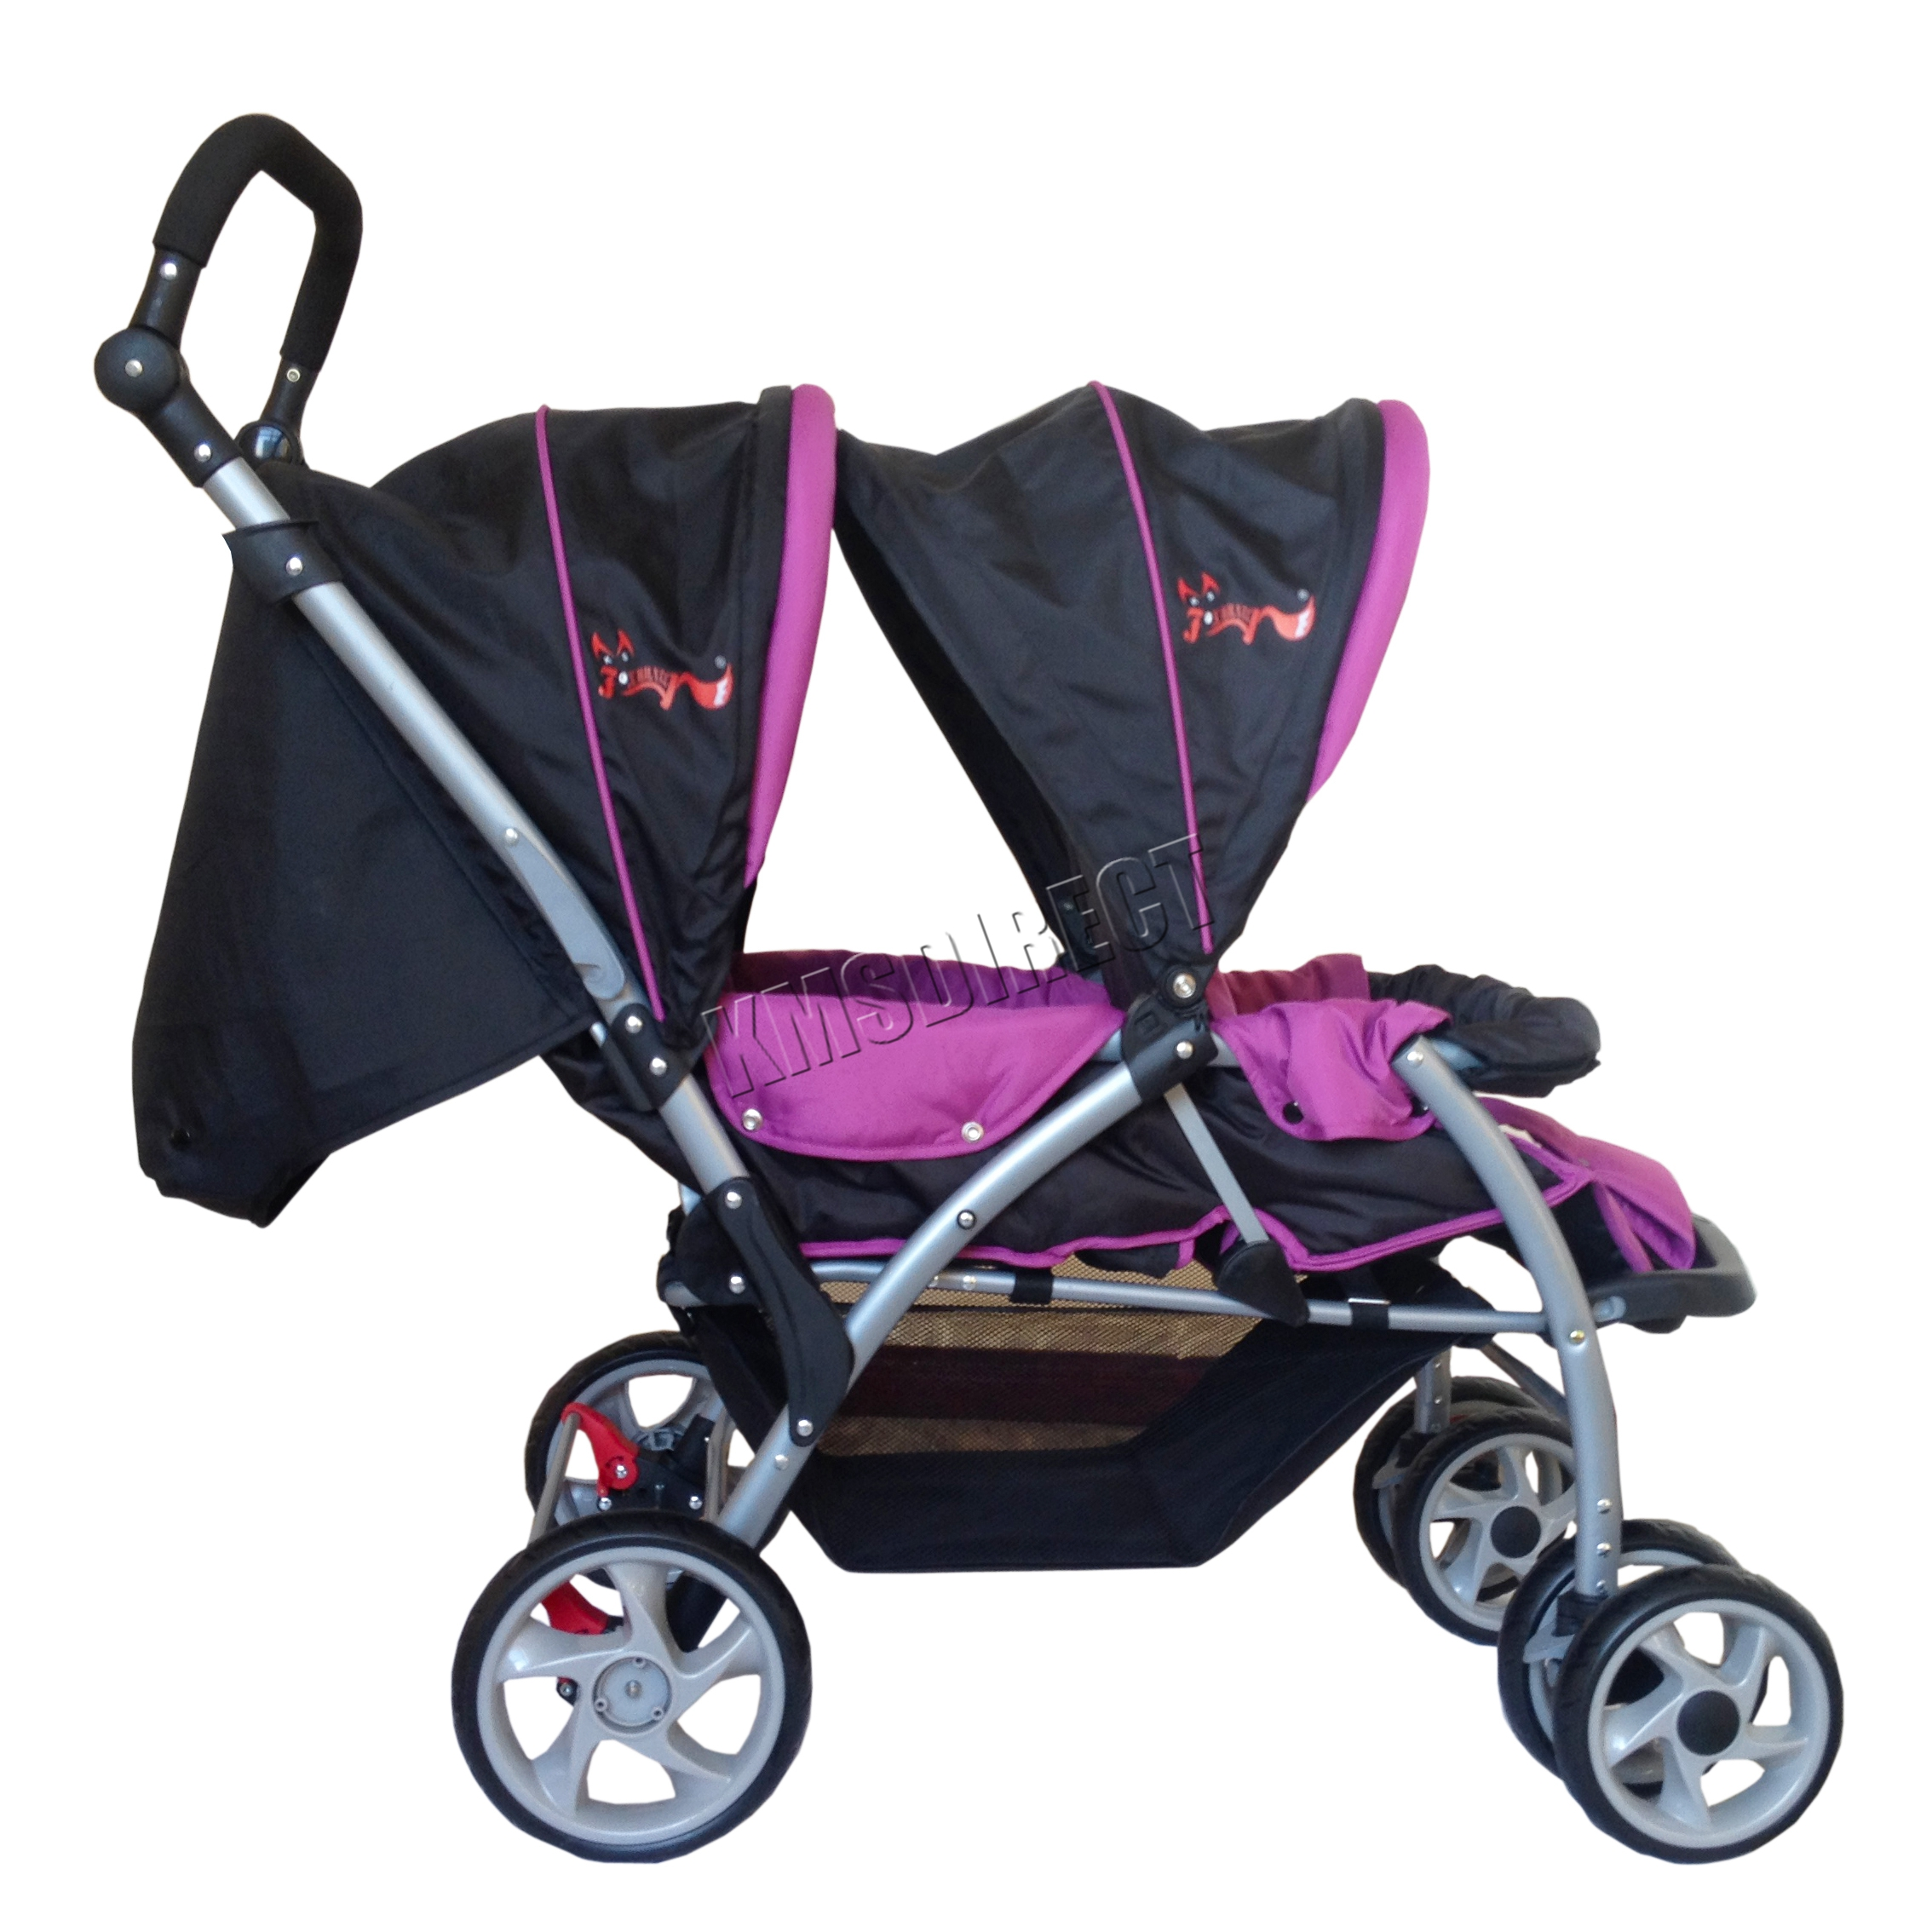 june  strollers   part  - foxhunter baby toddler tandem double stroller twin pushchair pram